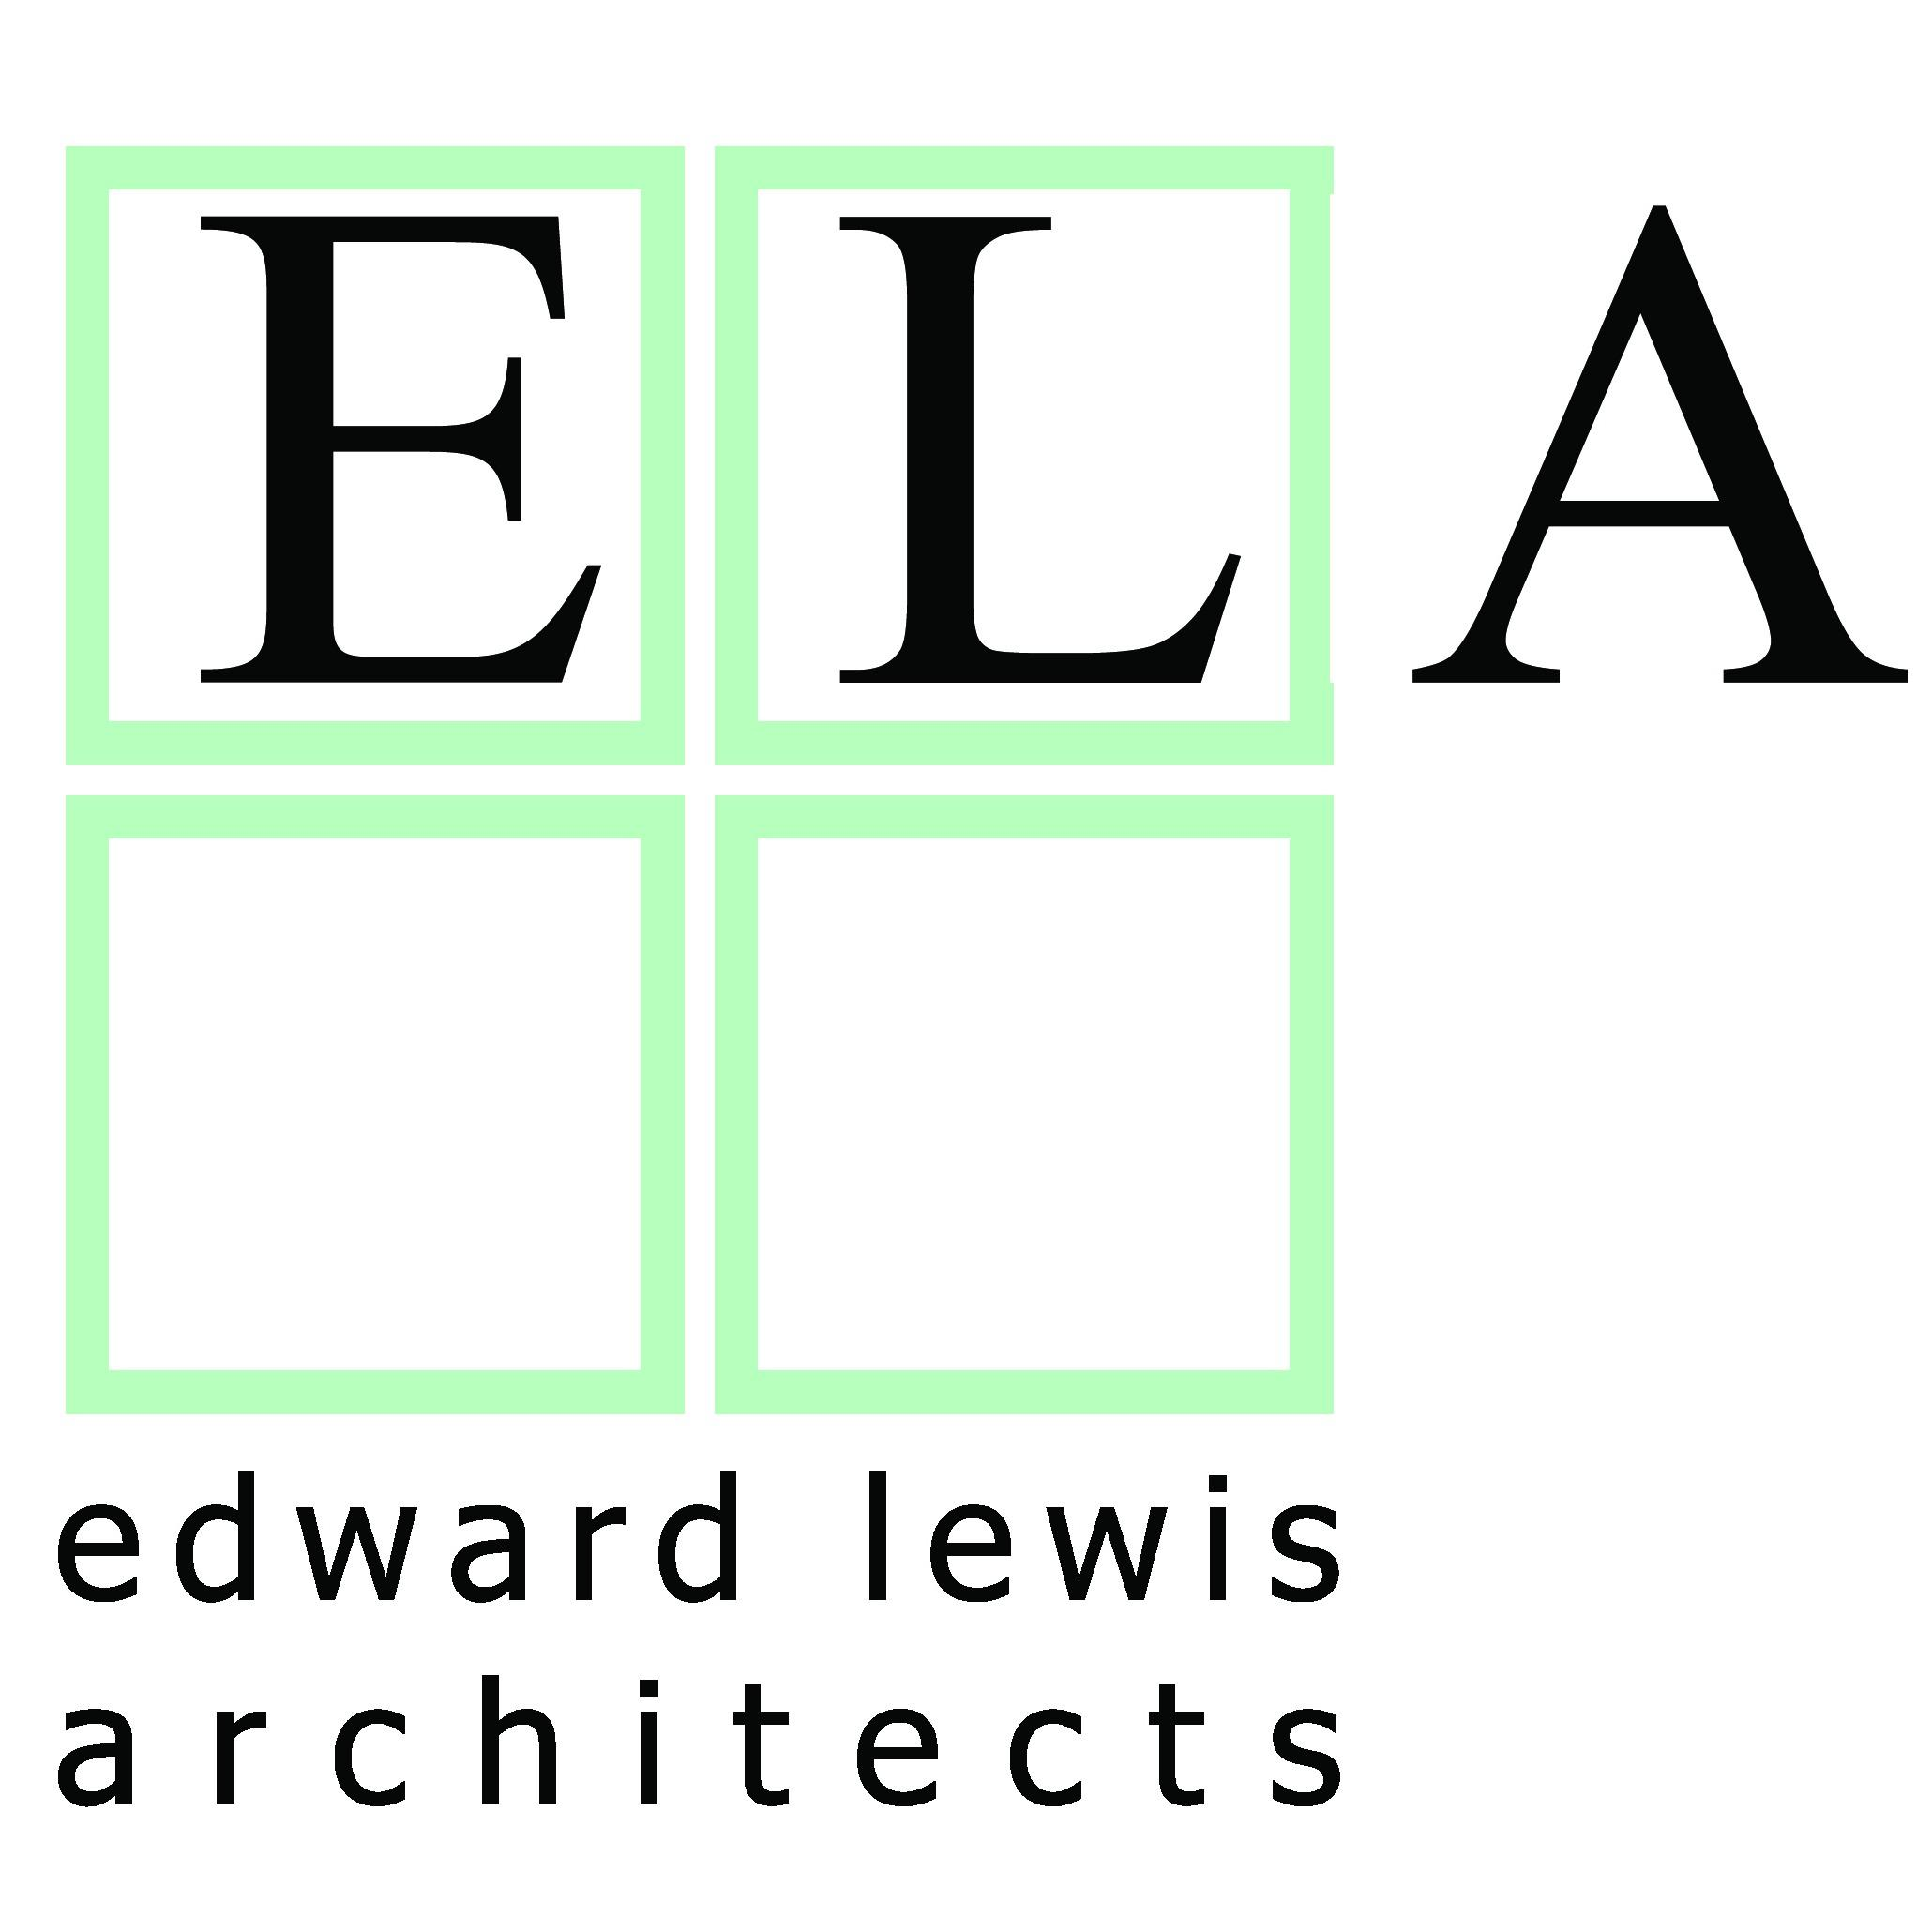 Edward lewis architects coupons near me in coral gables for Local residential architects near me